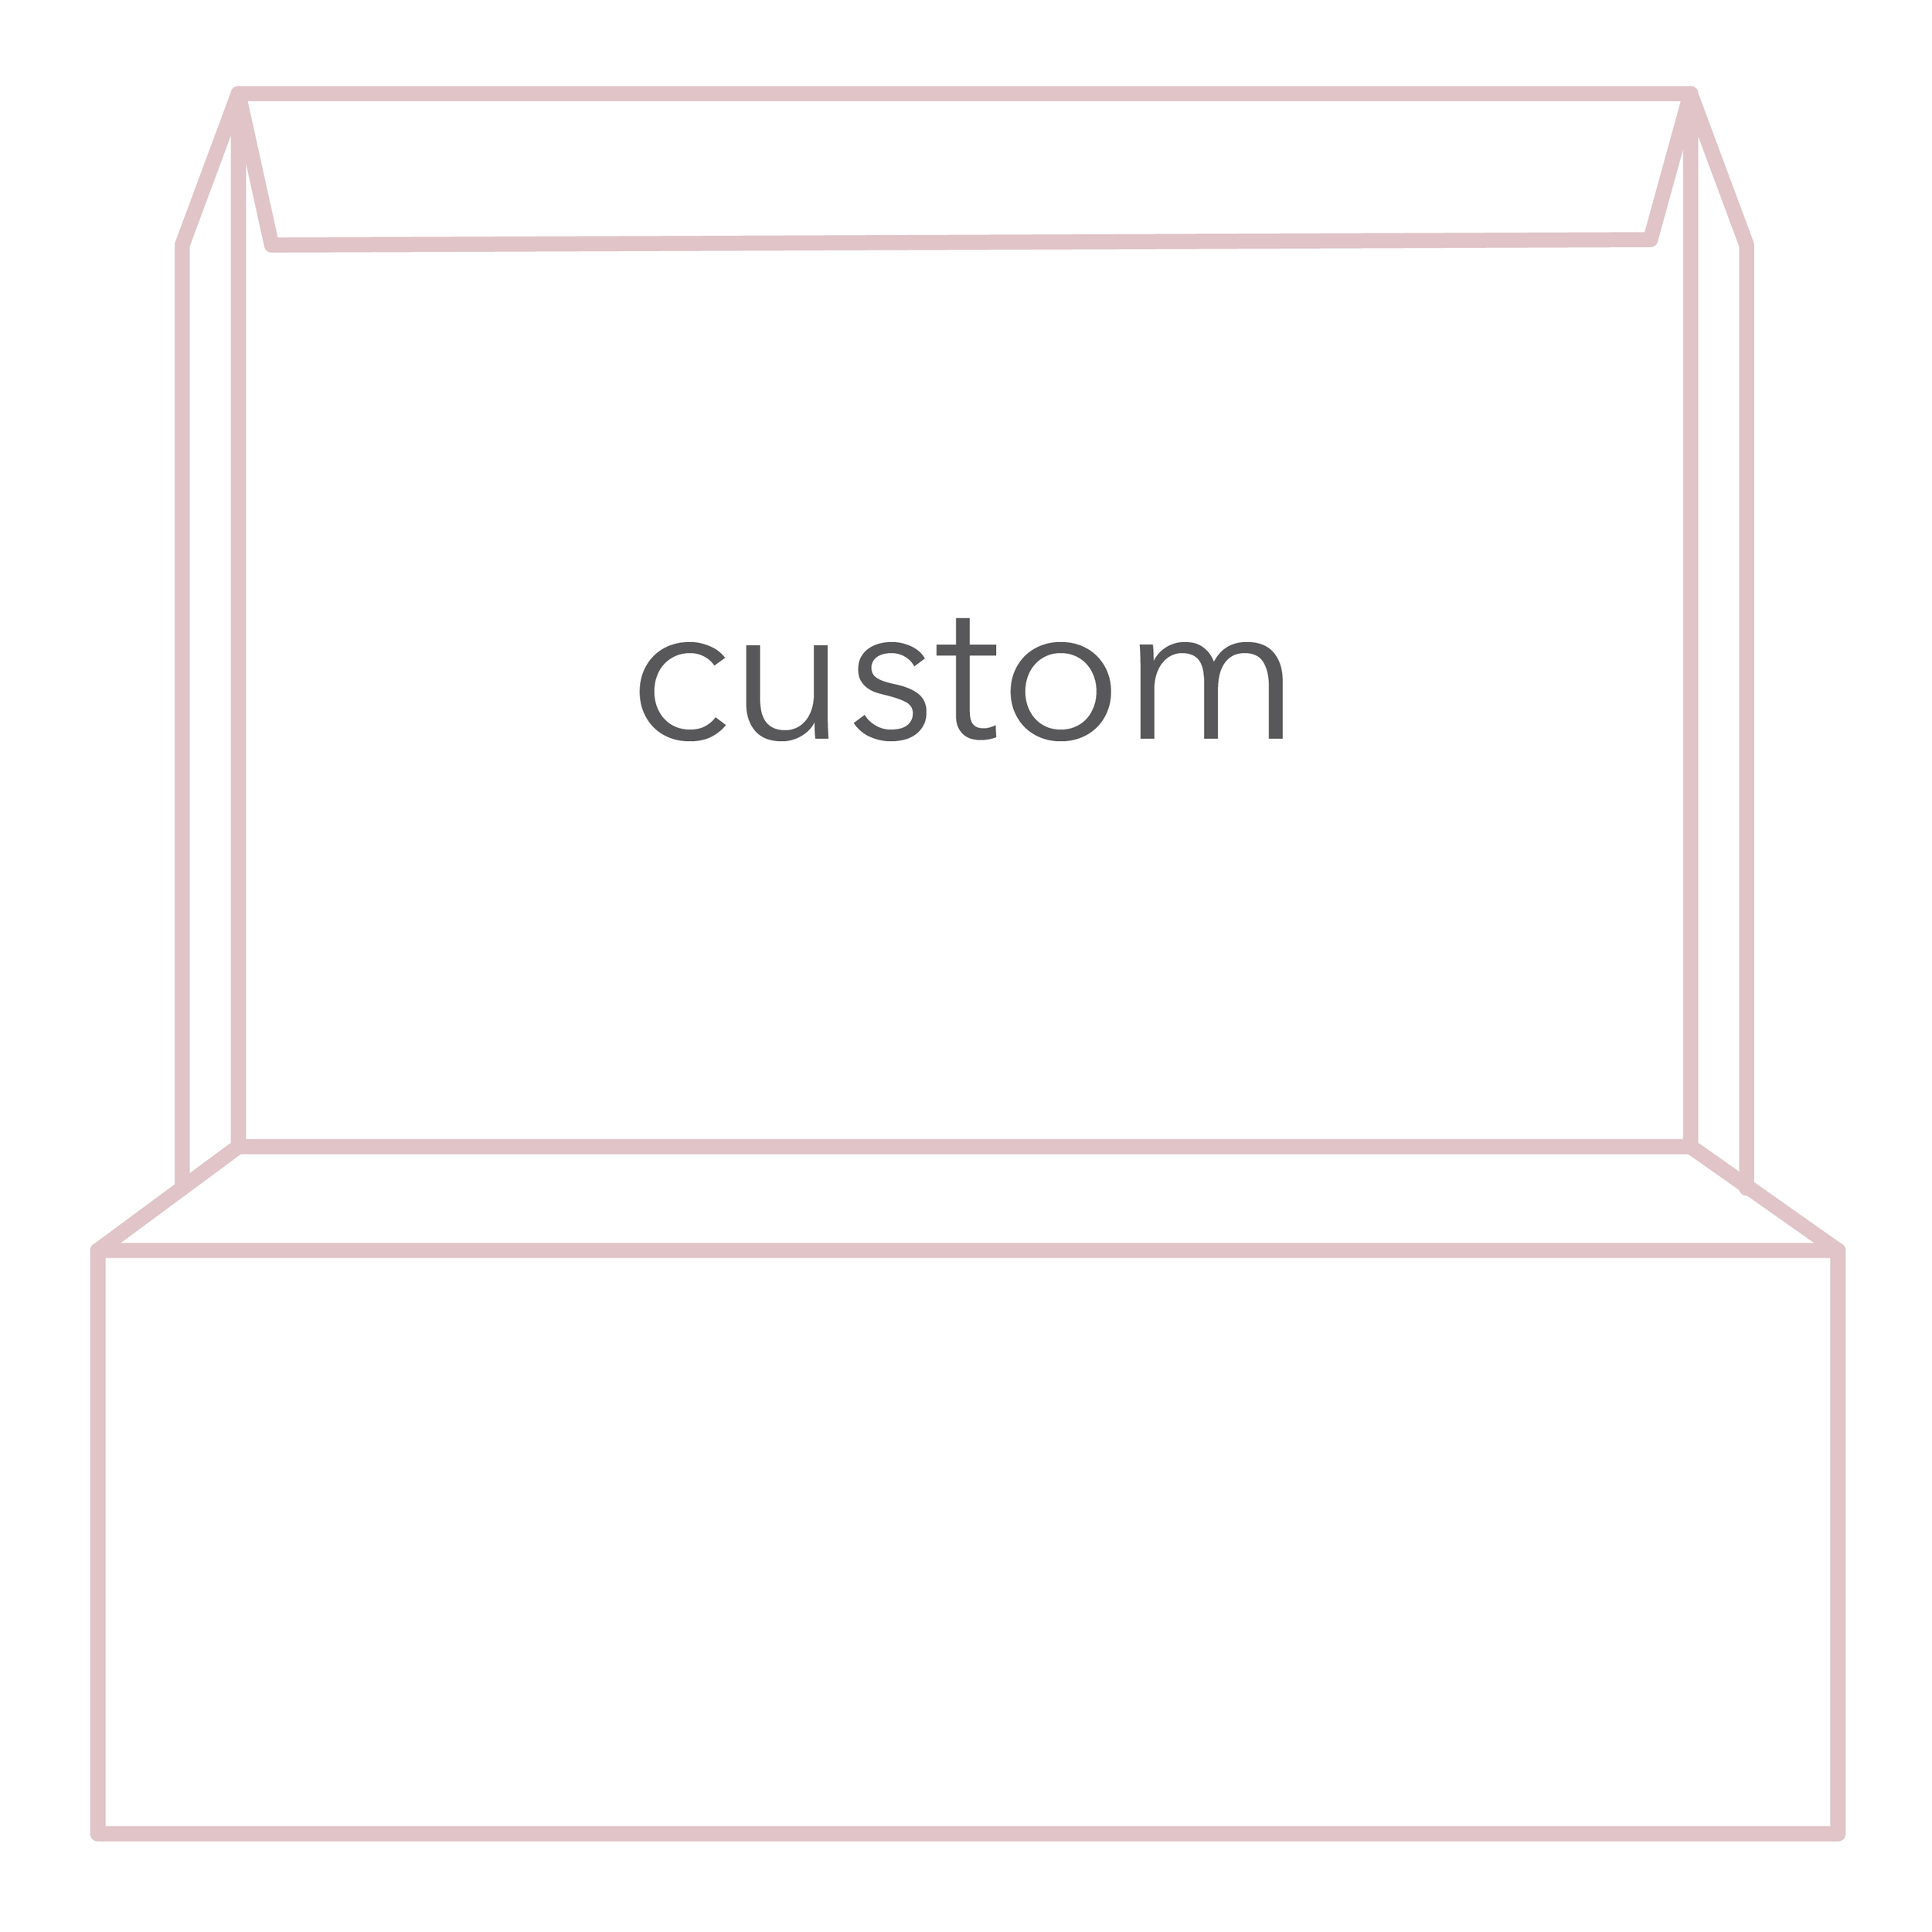 customButton.png